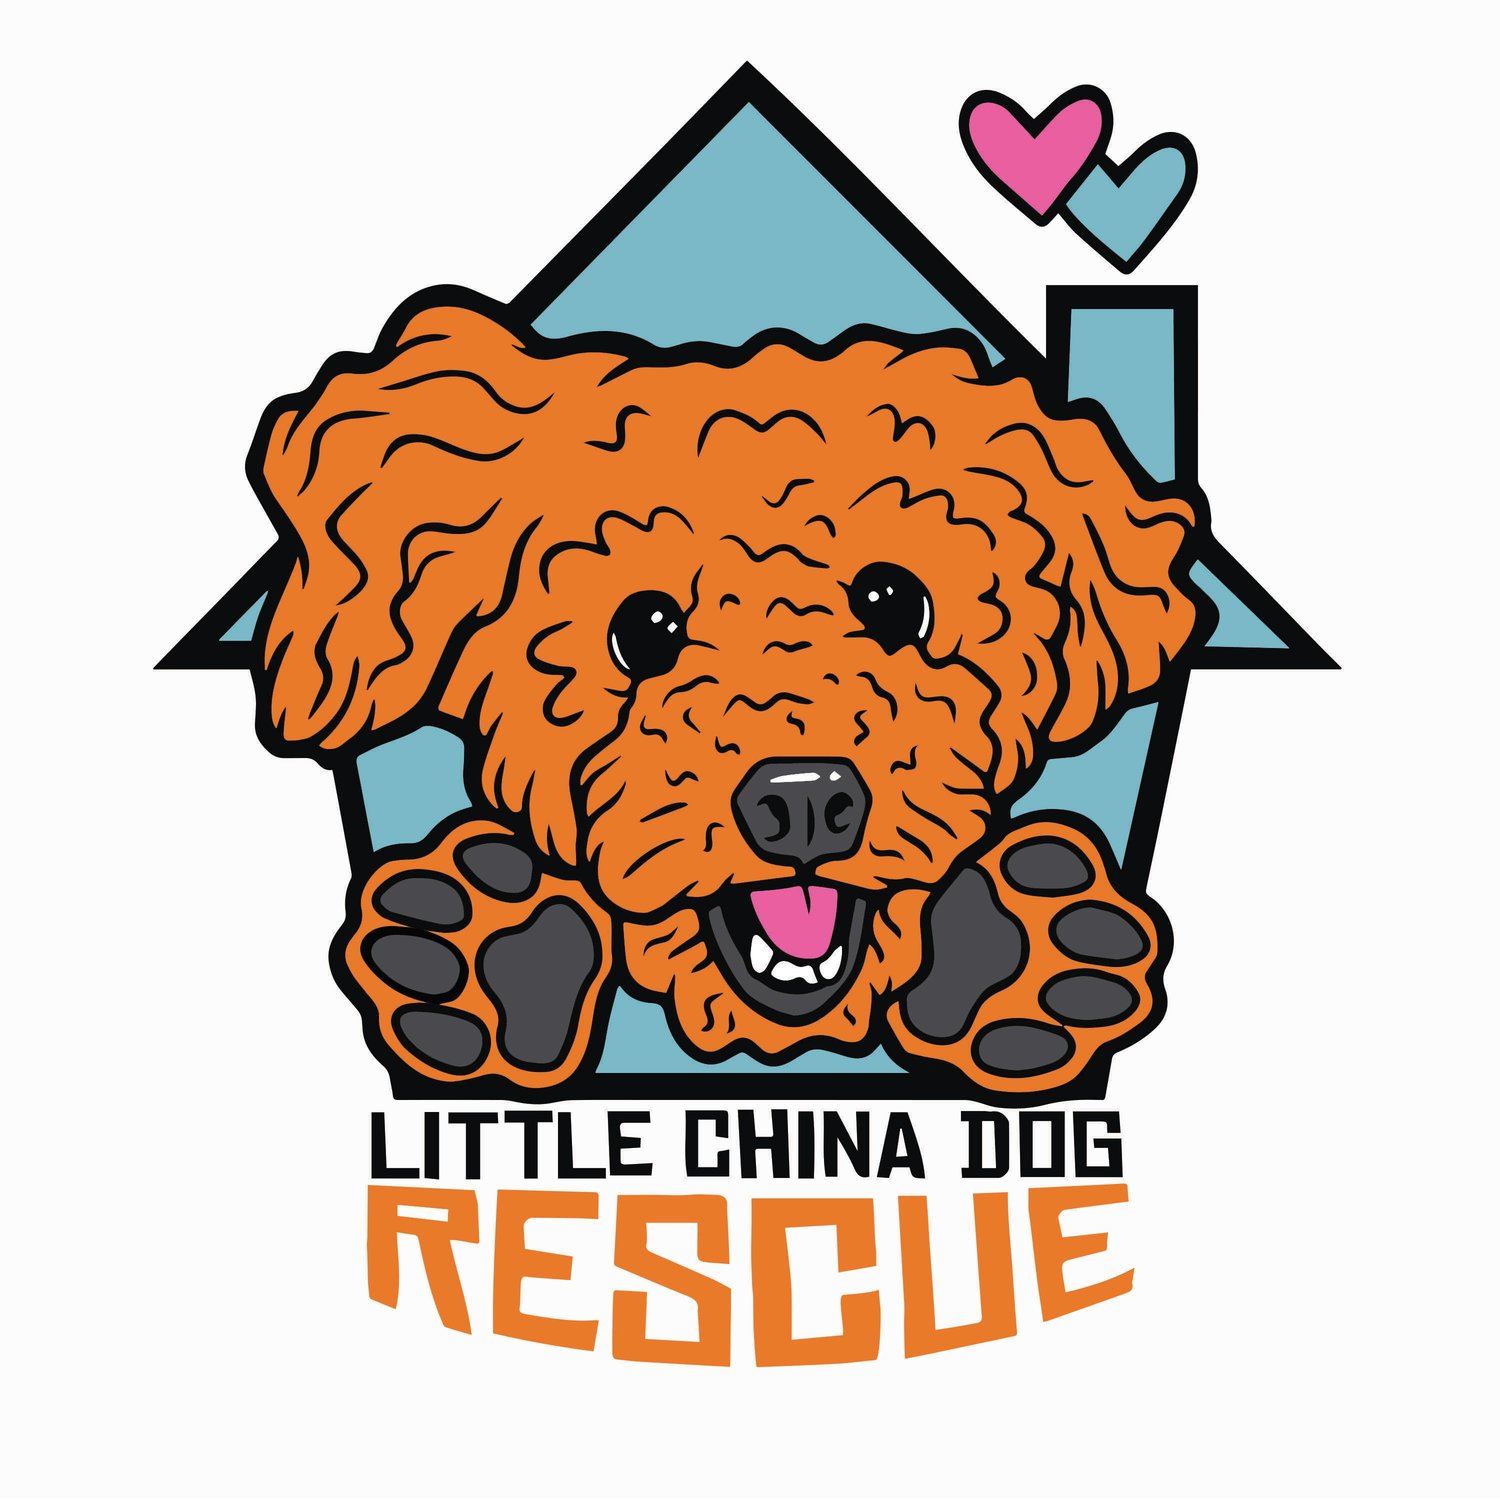 Little China dog rescue